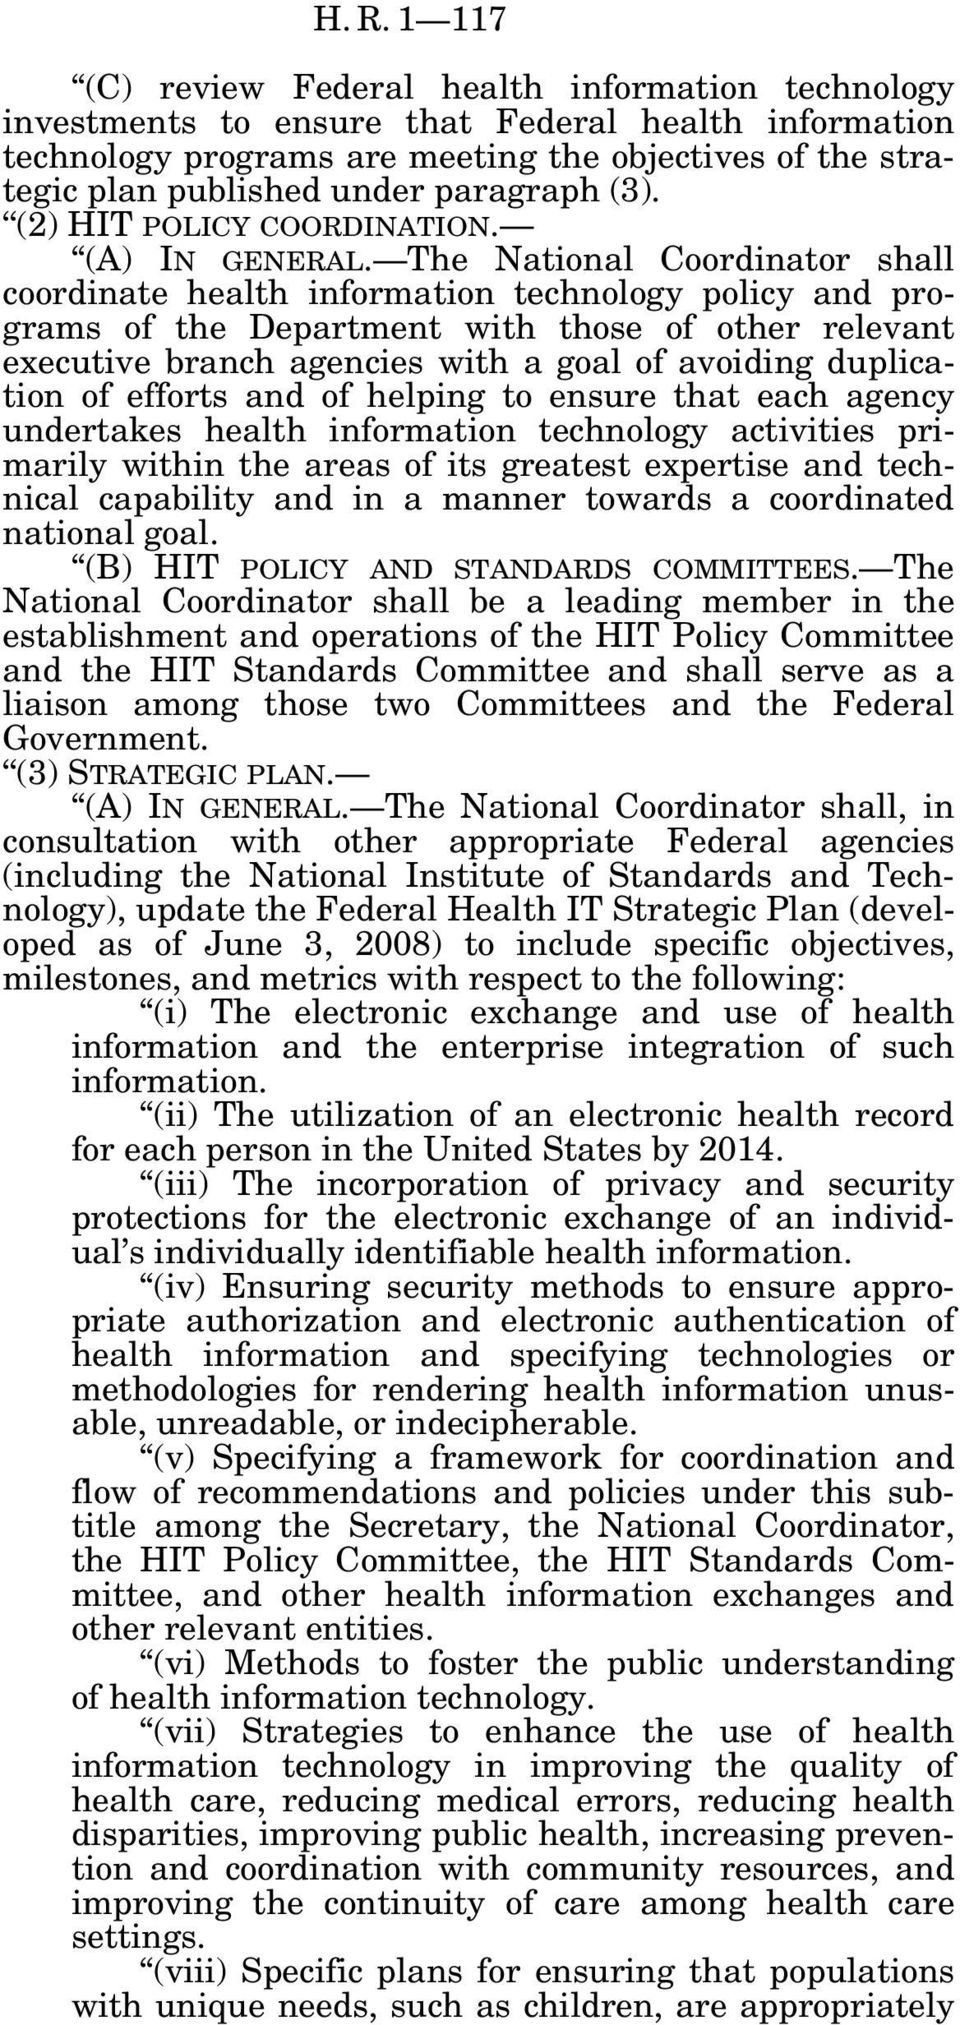 The National Coordinator shall coordinate health information technology policy and programs of the Department with those of other relevant executive branch agencies with a goal of avoiding